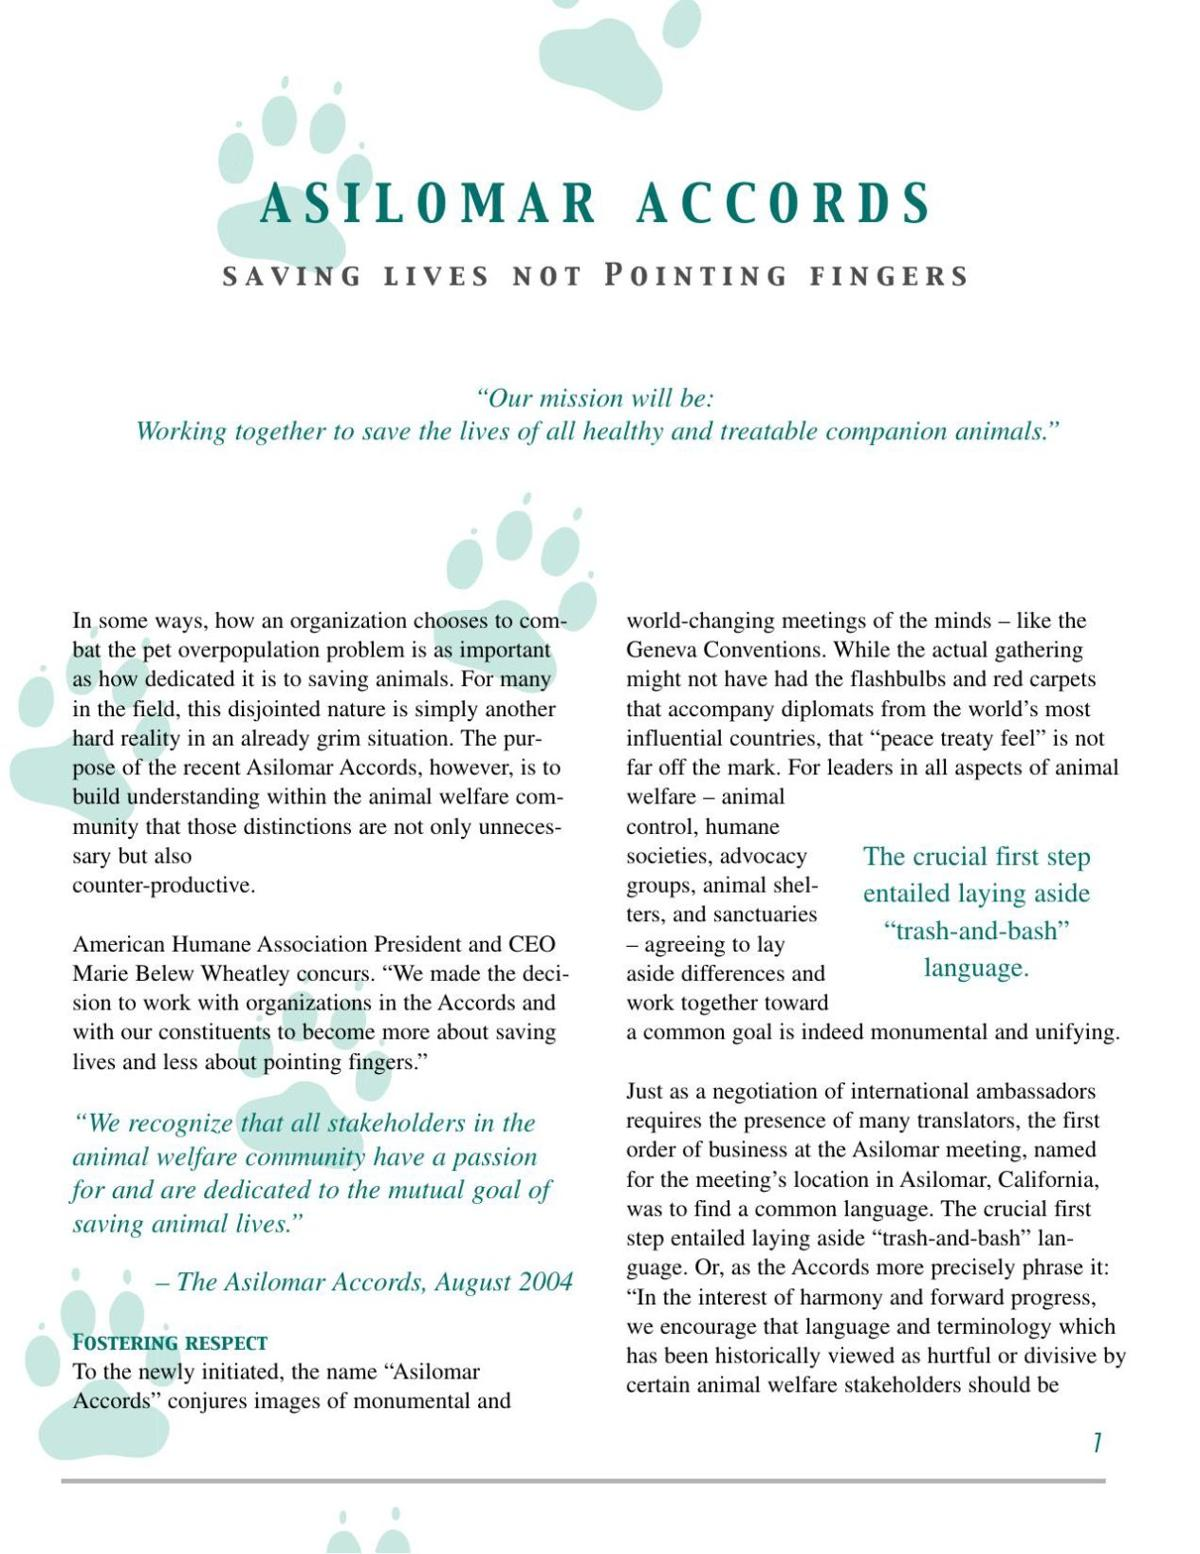 Asilomar Accords